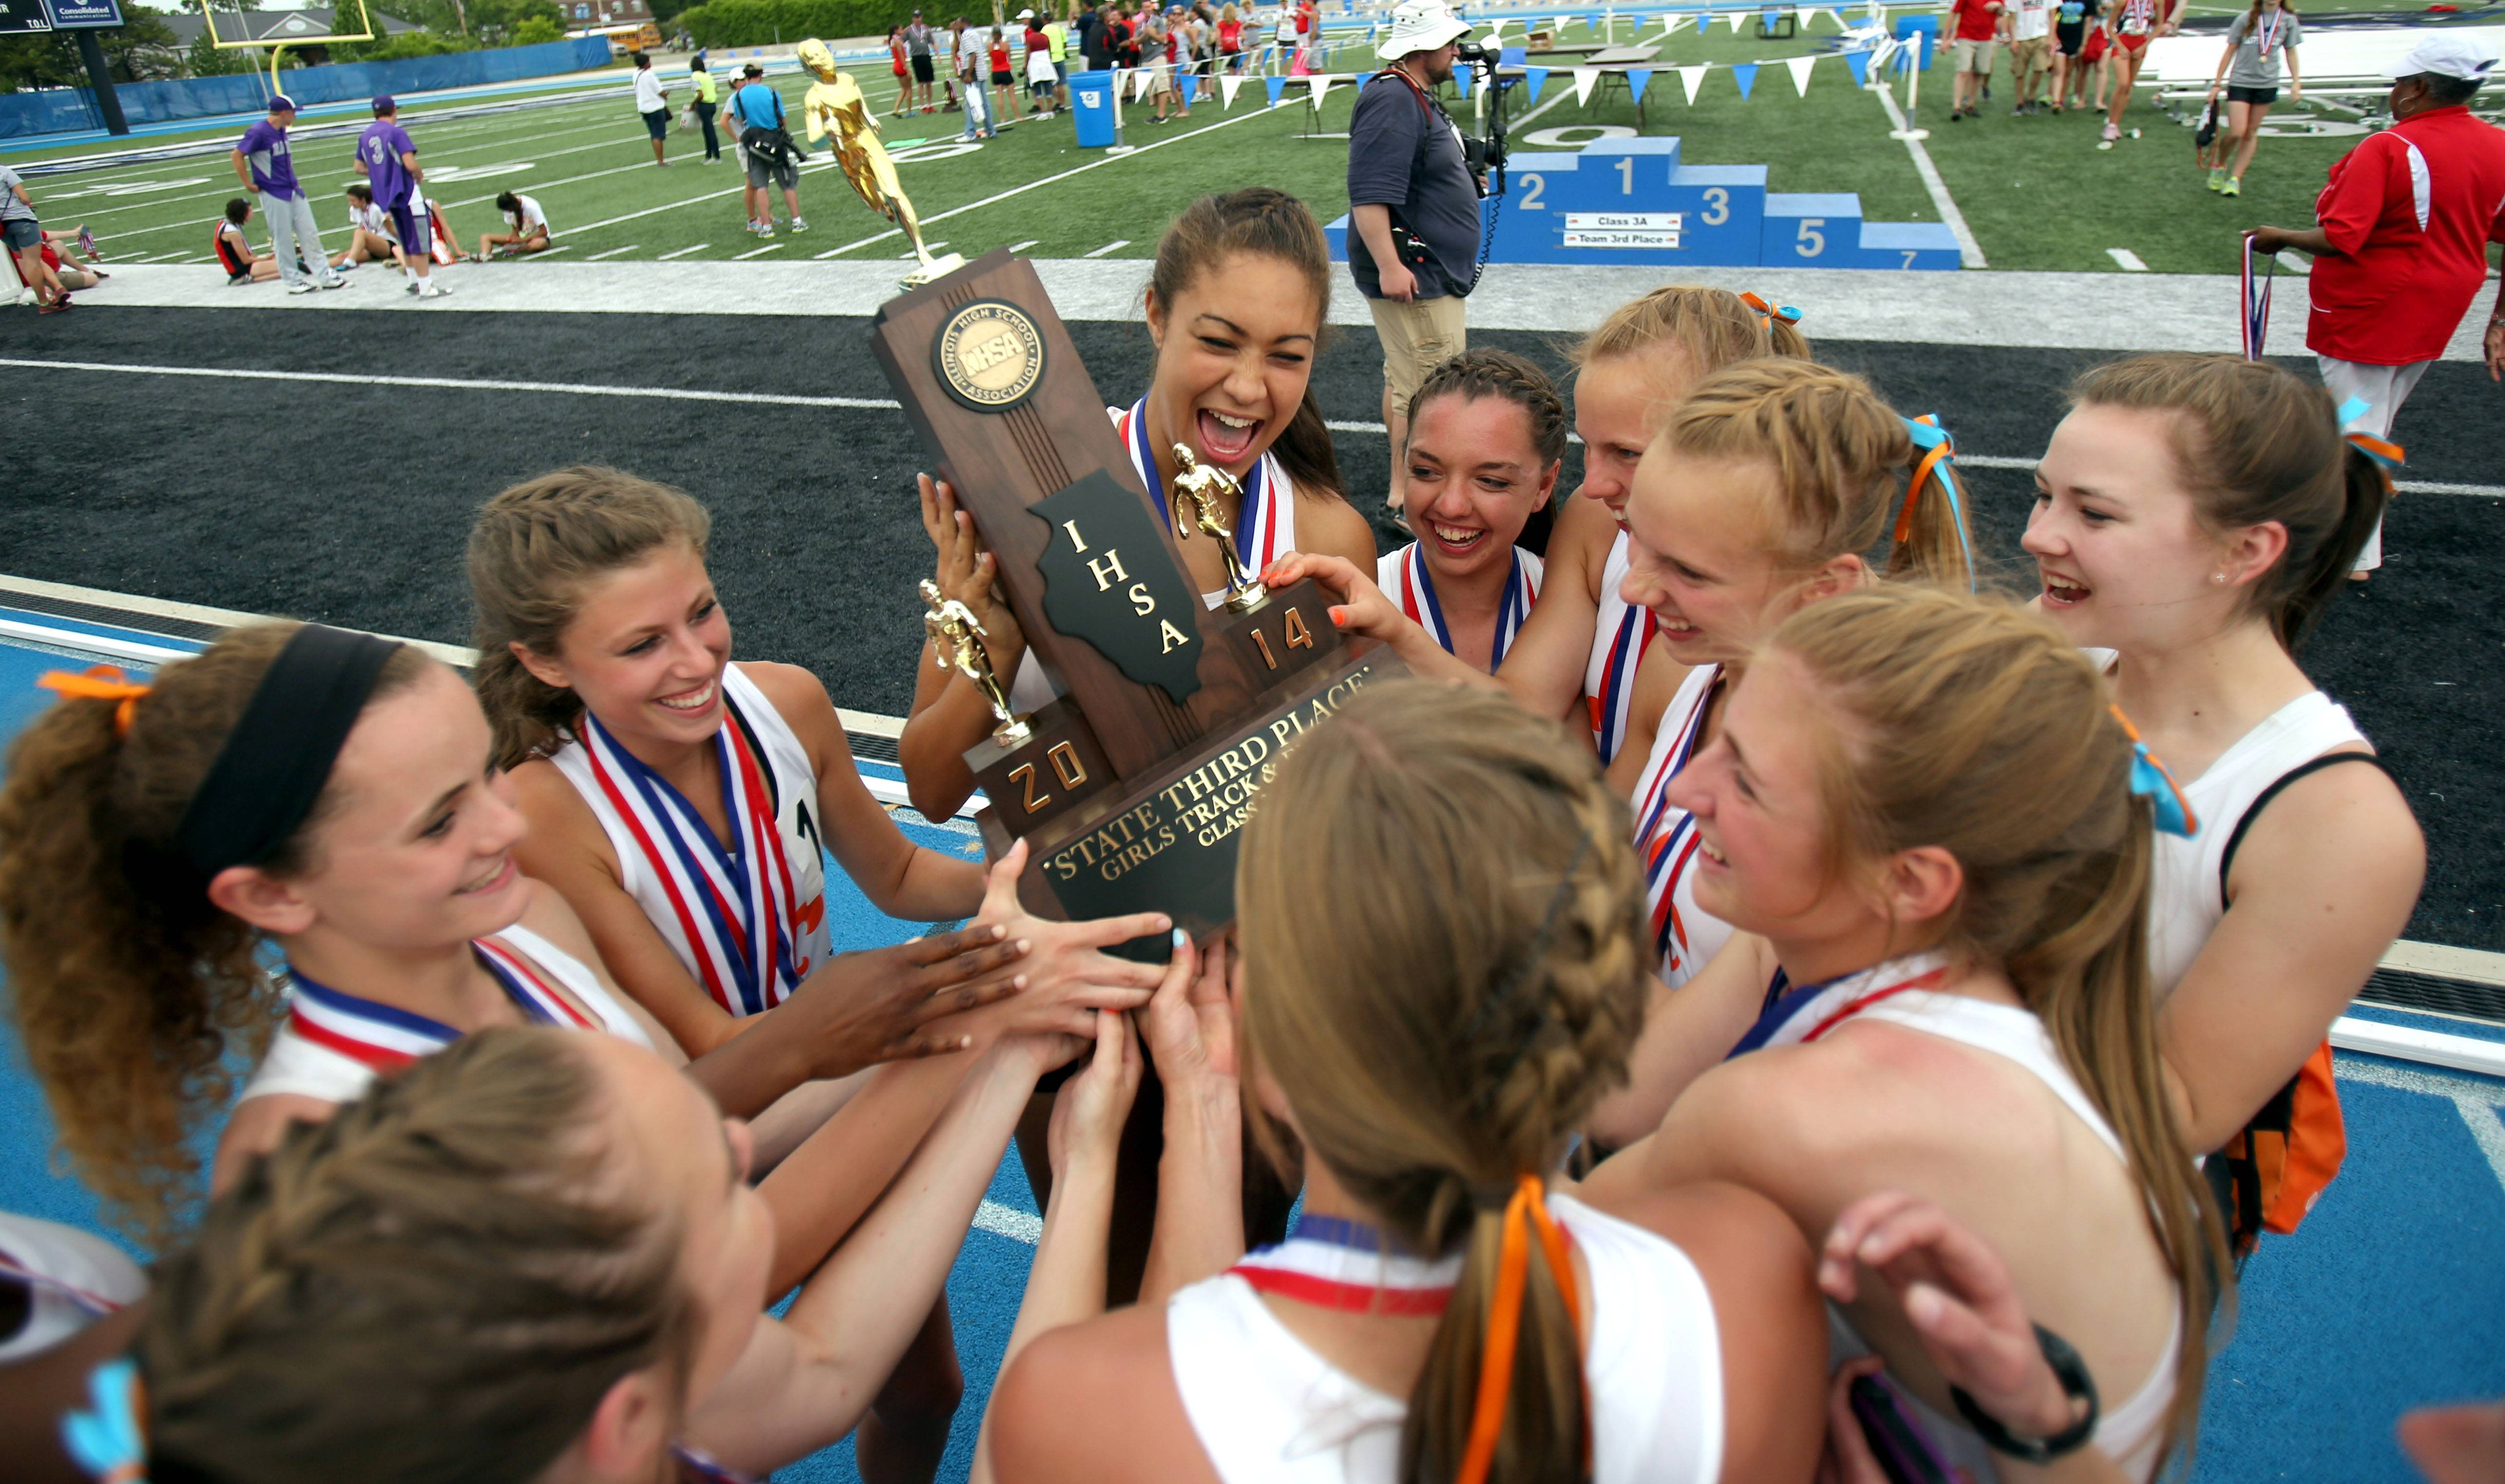 St. Charles East teammates celebrate around the Class 3A 3rd place trophy during the girls track and field state finals at Eastern Illinois University in Charleston Saturday.